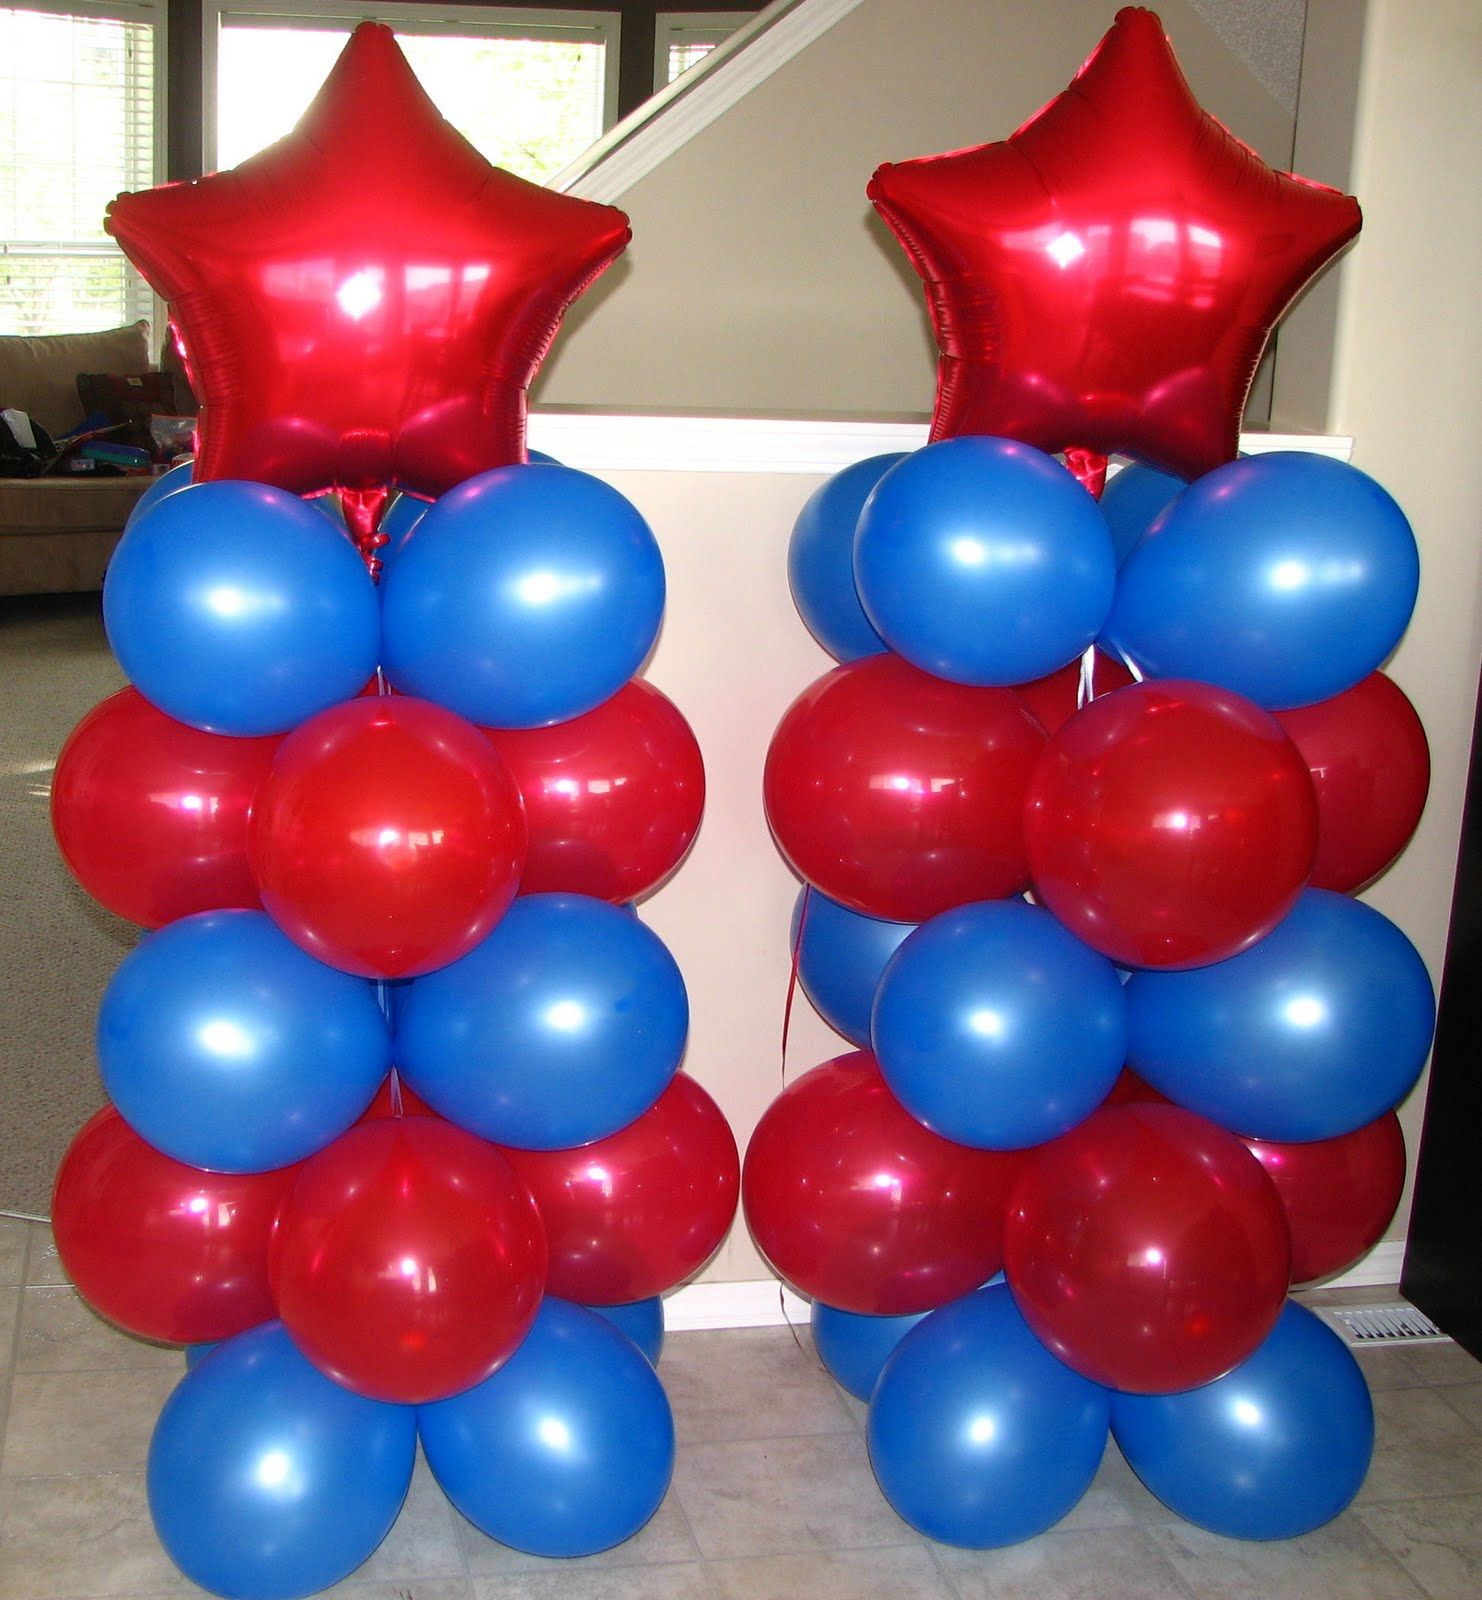 Party balloons decorations - Spiderman Birthday Decoration Spiderman Color Themed Balloons Spiderman Gifts Box Spiderman Juice